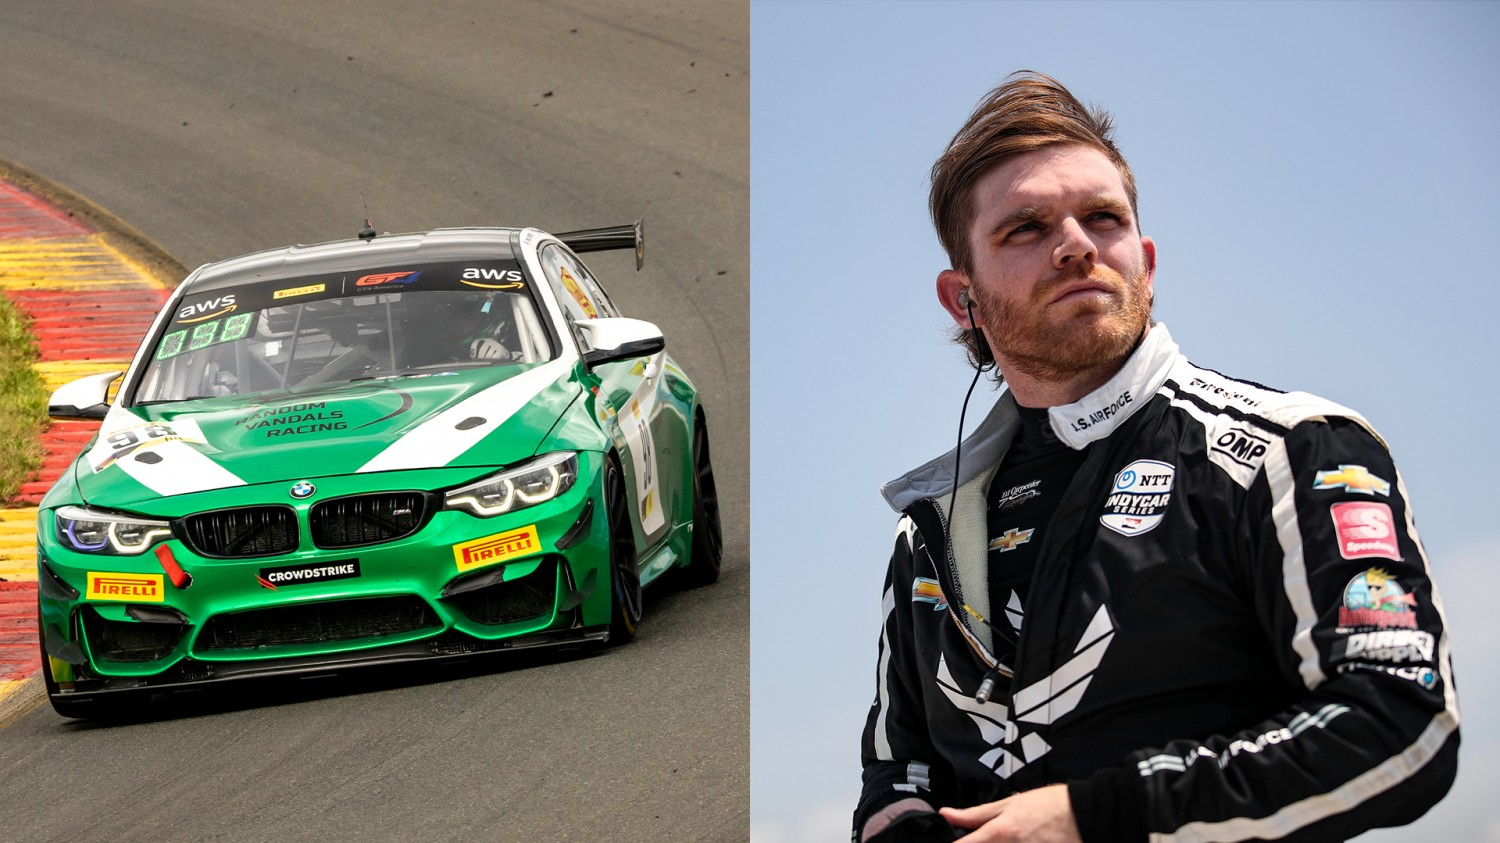 IndyCar star Daly joins RVR's Indianapolis GT4 entry